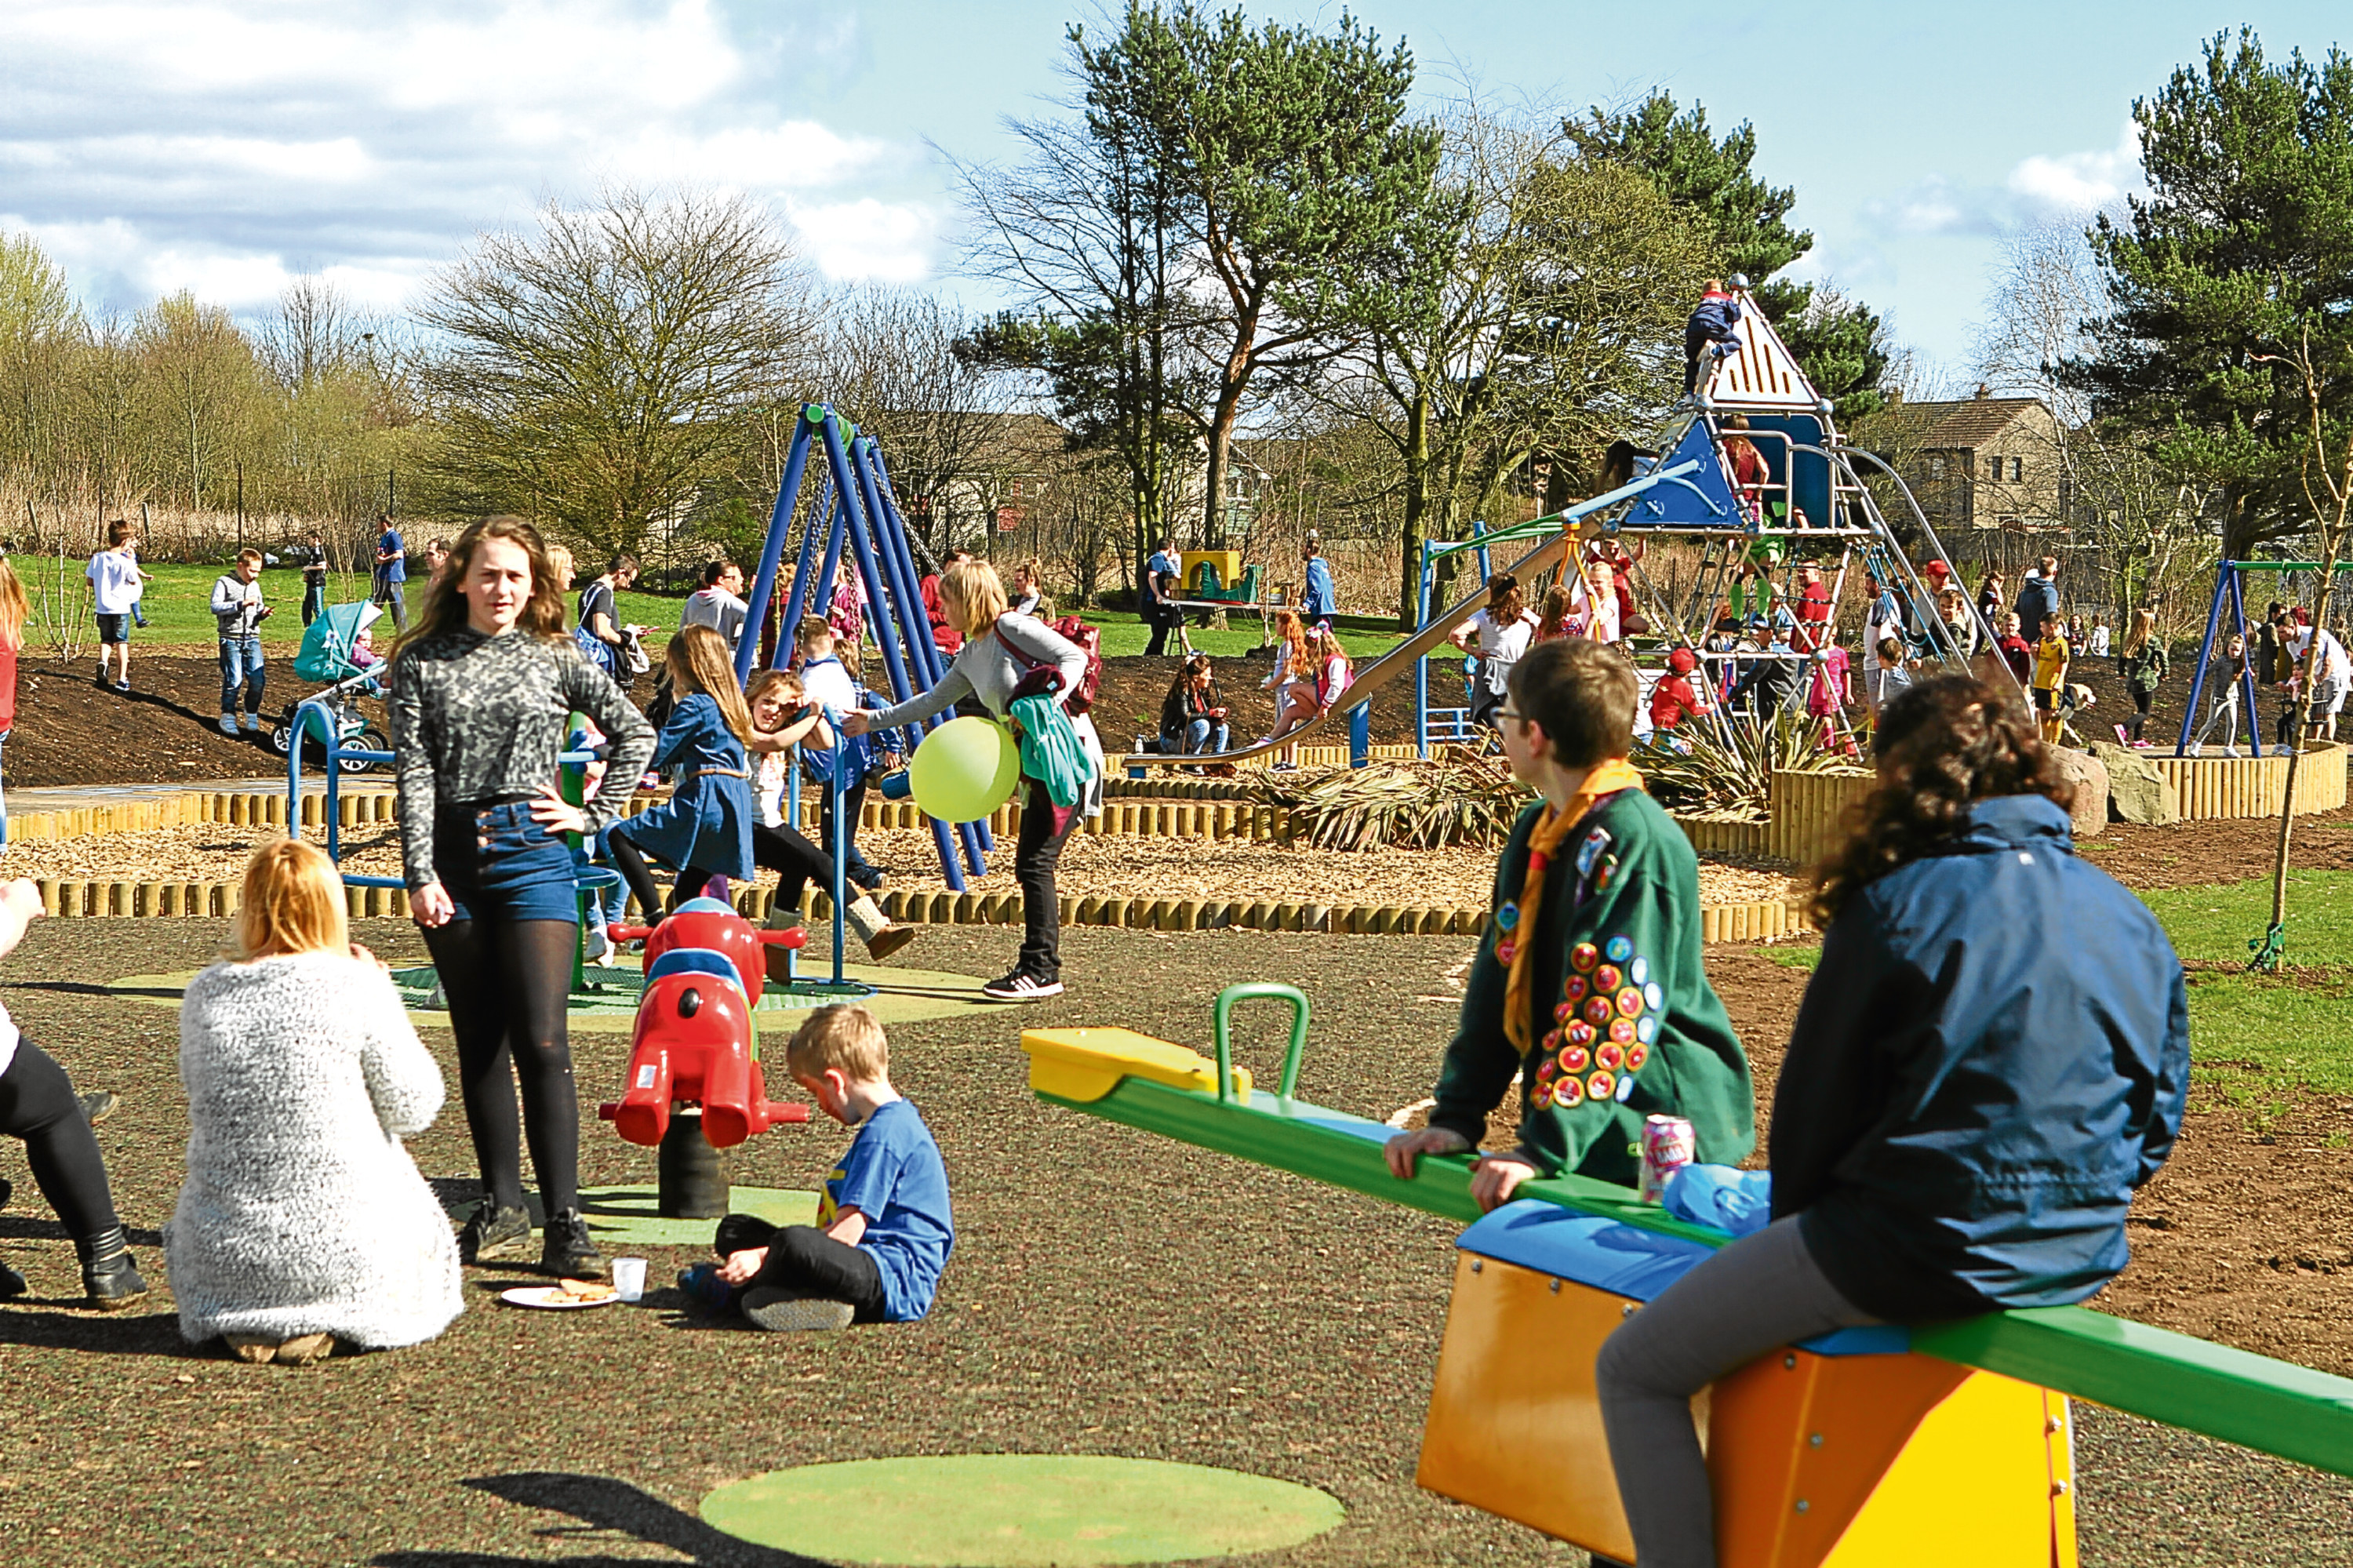 Families were out in force to enjoy an afternoon of fun for the Fintry park's official opening.